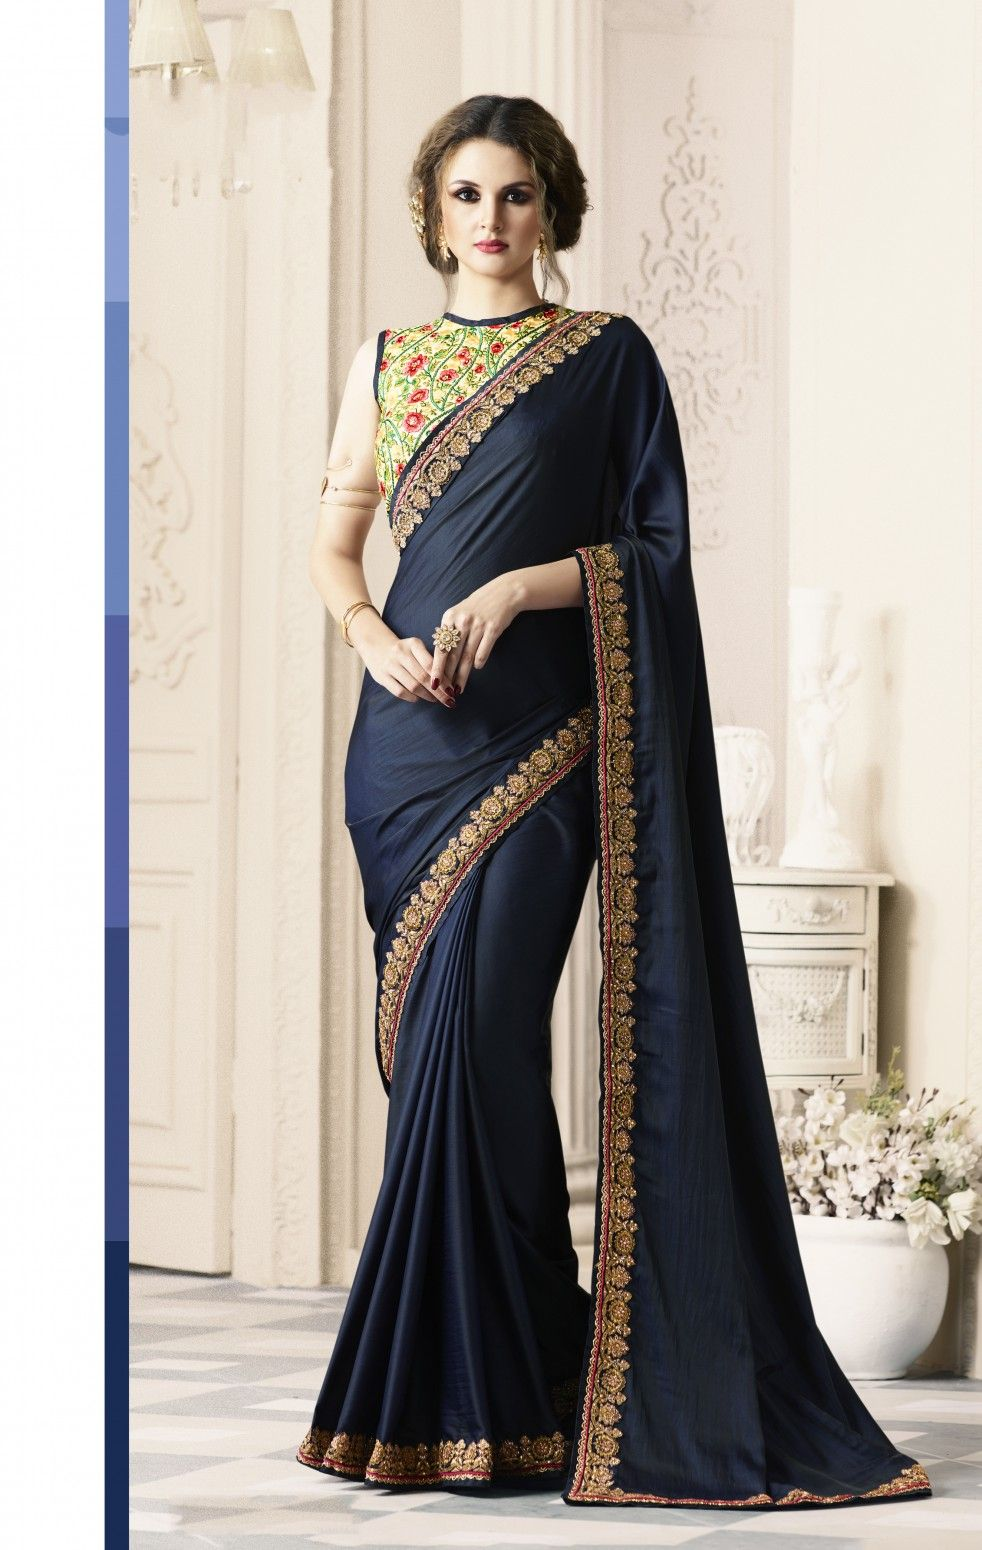 8228674943 Buy Navy Blue color Silk Saree Online at Low prices in India on Winsant # saree #cottonsaree #designer #fashion #style #ethnic #ethnicwear  #onlineshopping ...